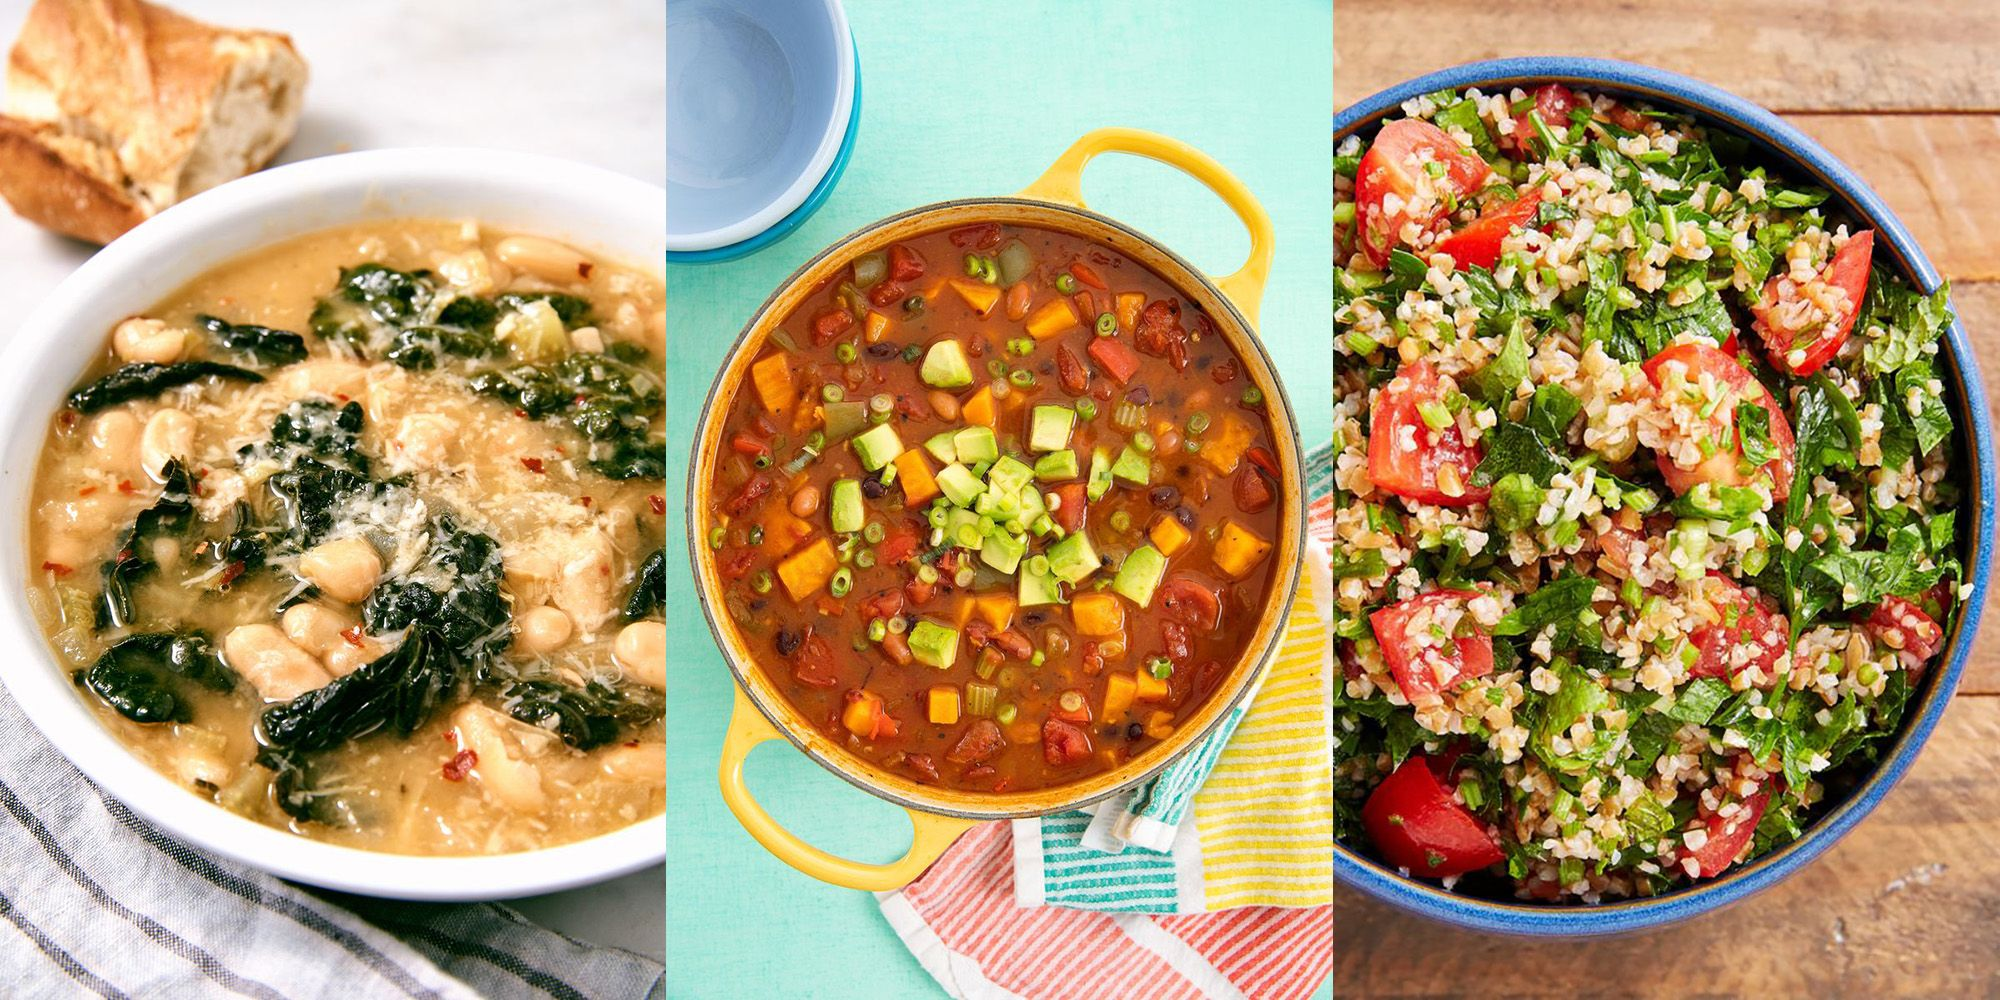 Healthy Vegetarian Recipes That Are Totally Delicious